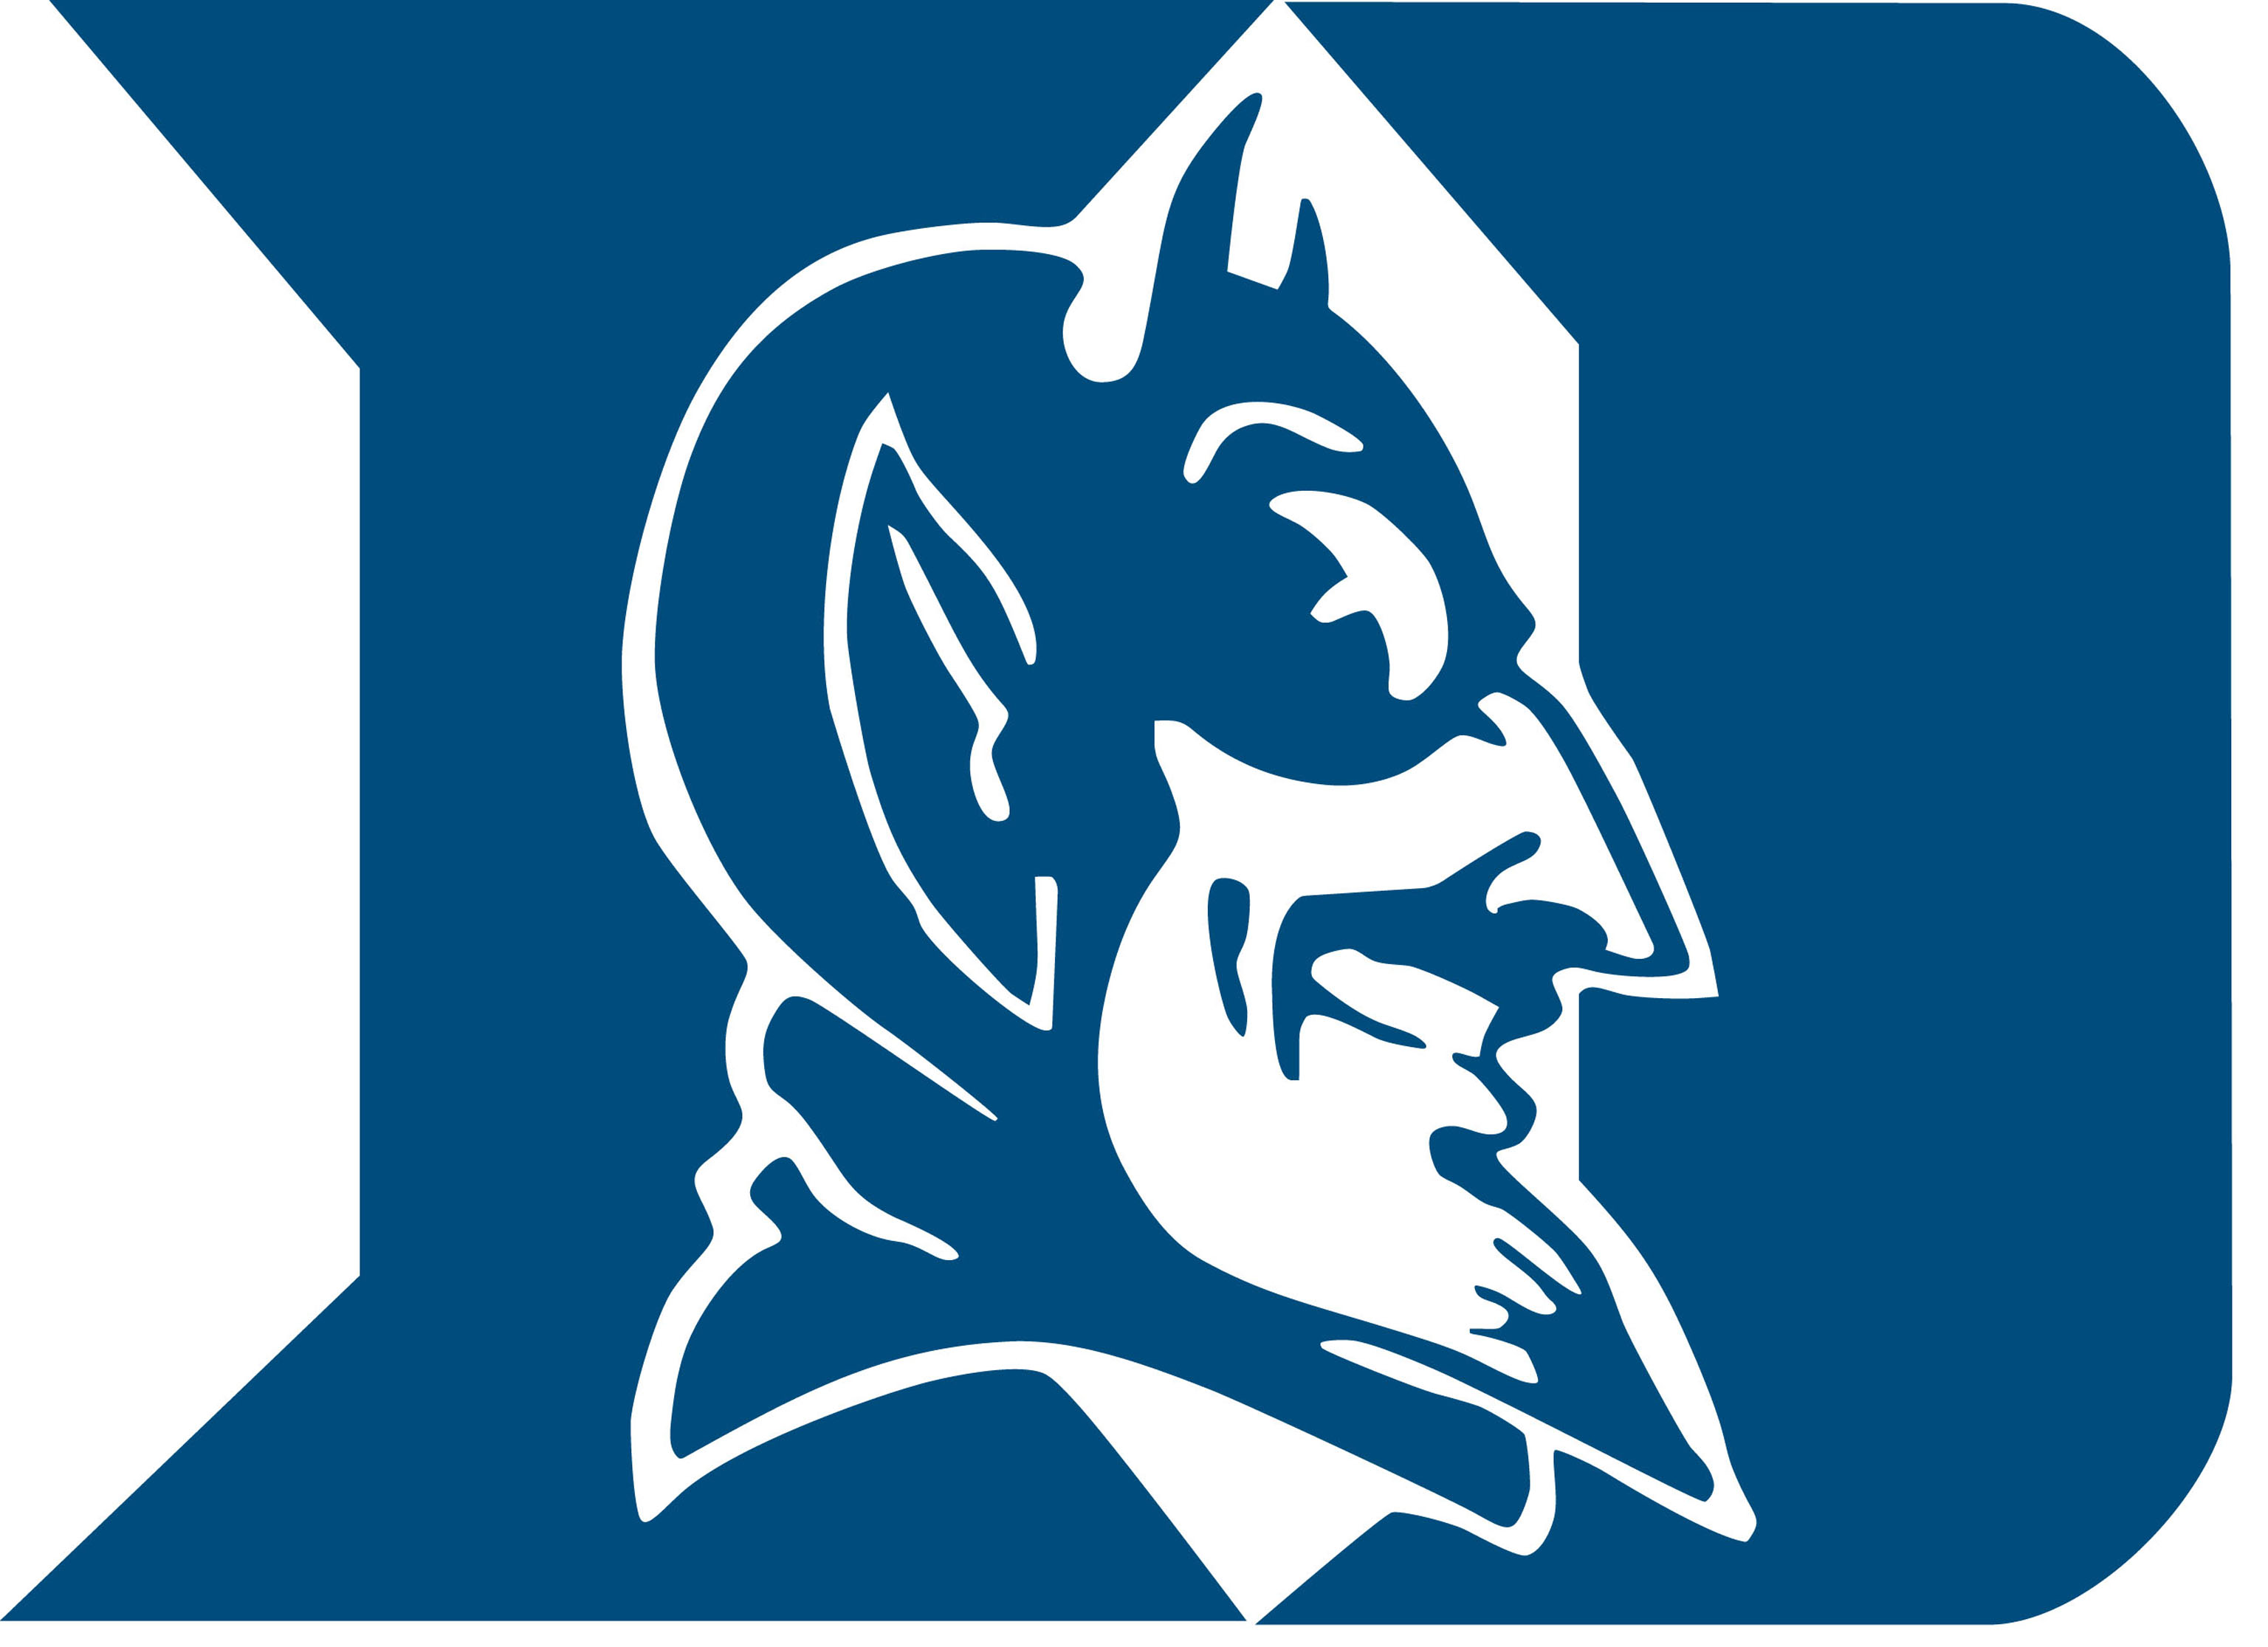 Duke basketball desktop clipart.